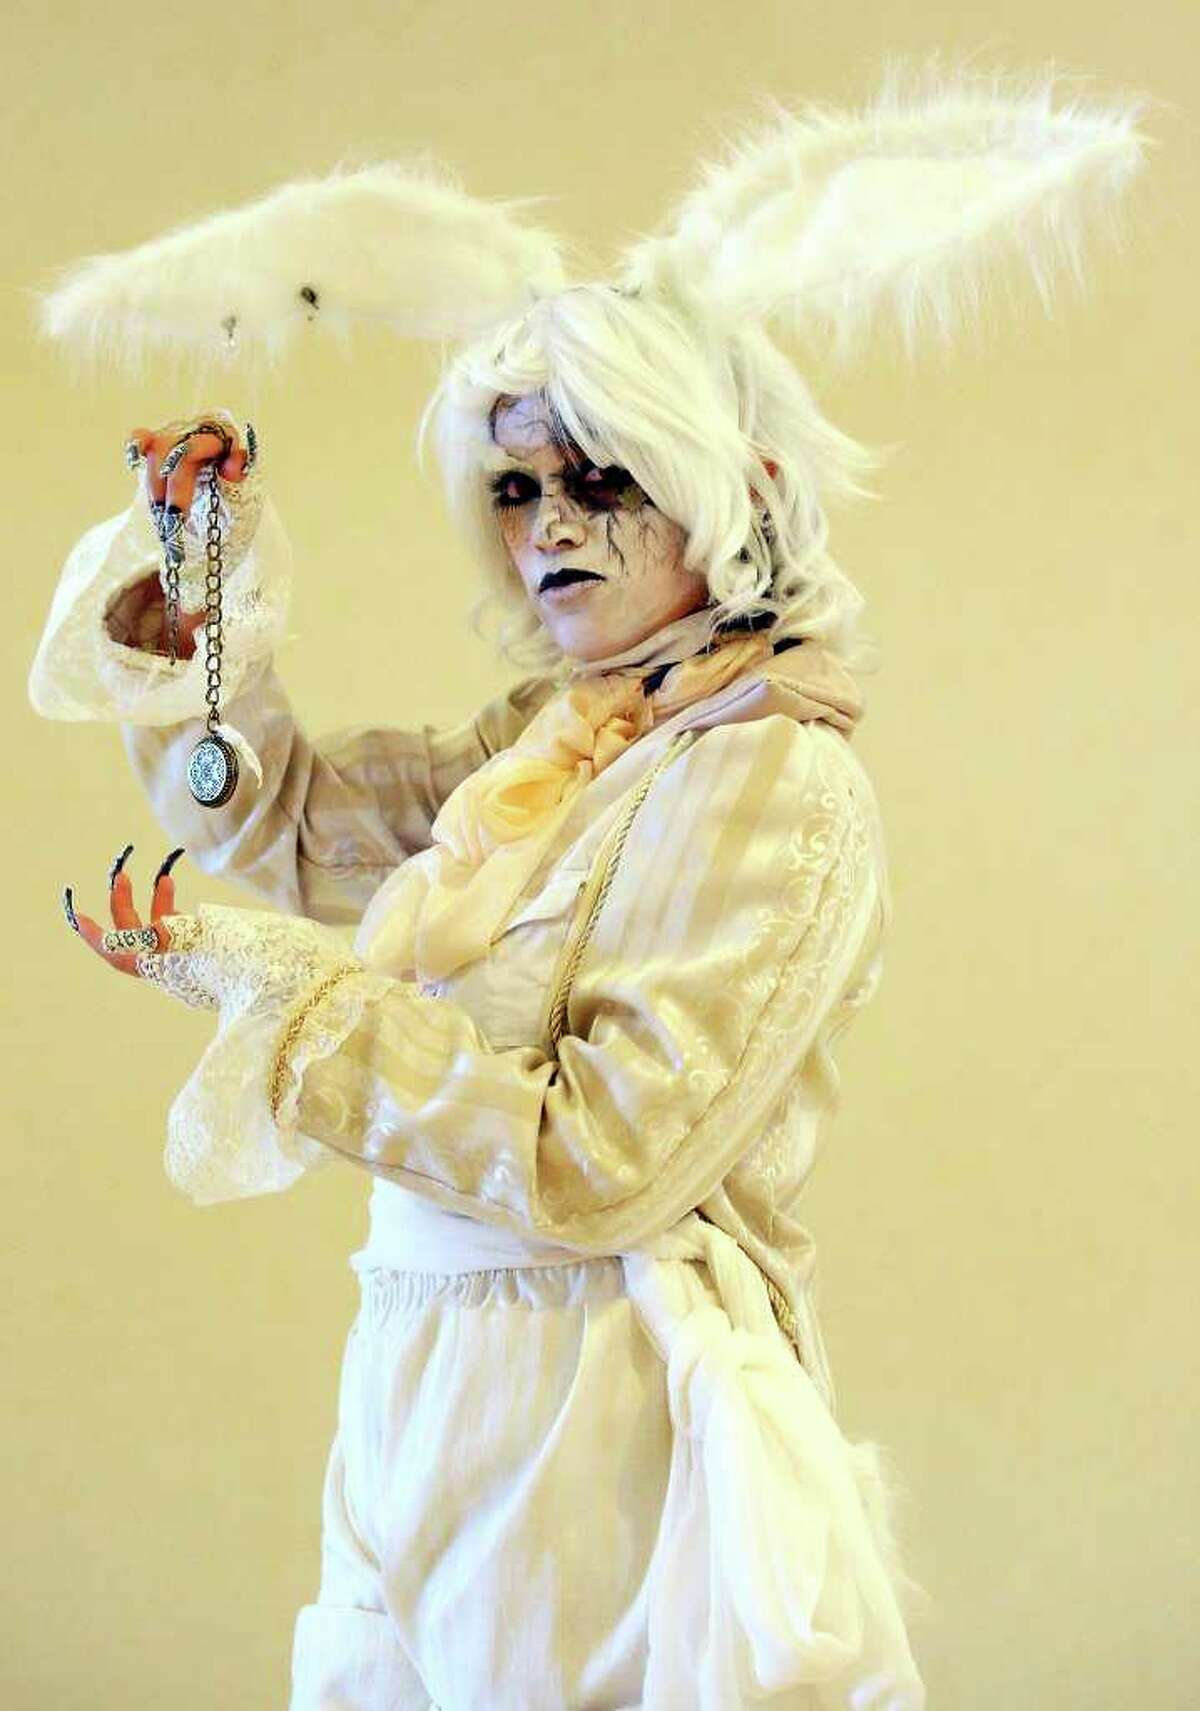 """Natalie Hoo, 23, as the """"White Rabbit"""" poses for a photo while attending the San Japan 4TW convention Saturday Aug. 6, 2011 at the Marriott Rivercenter. San Japan 4TW runs Aug. 5-Aug. 7th."""